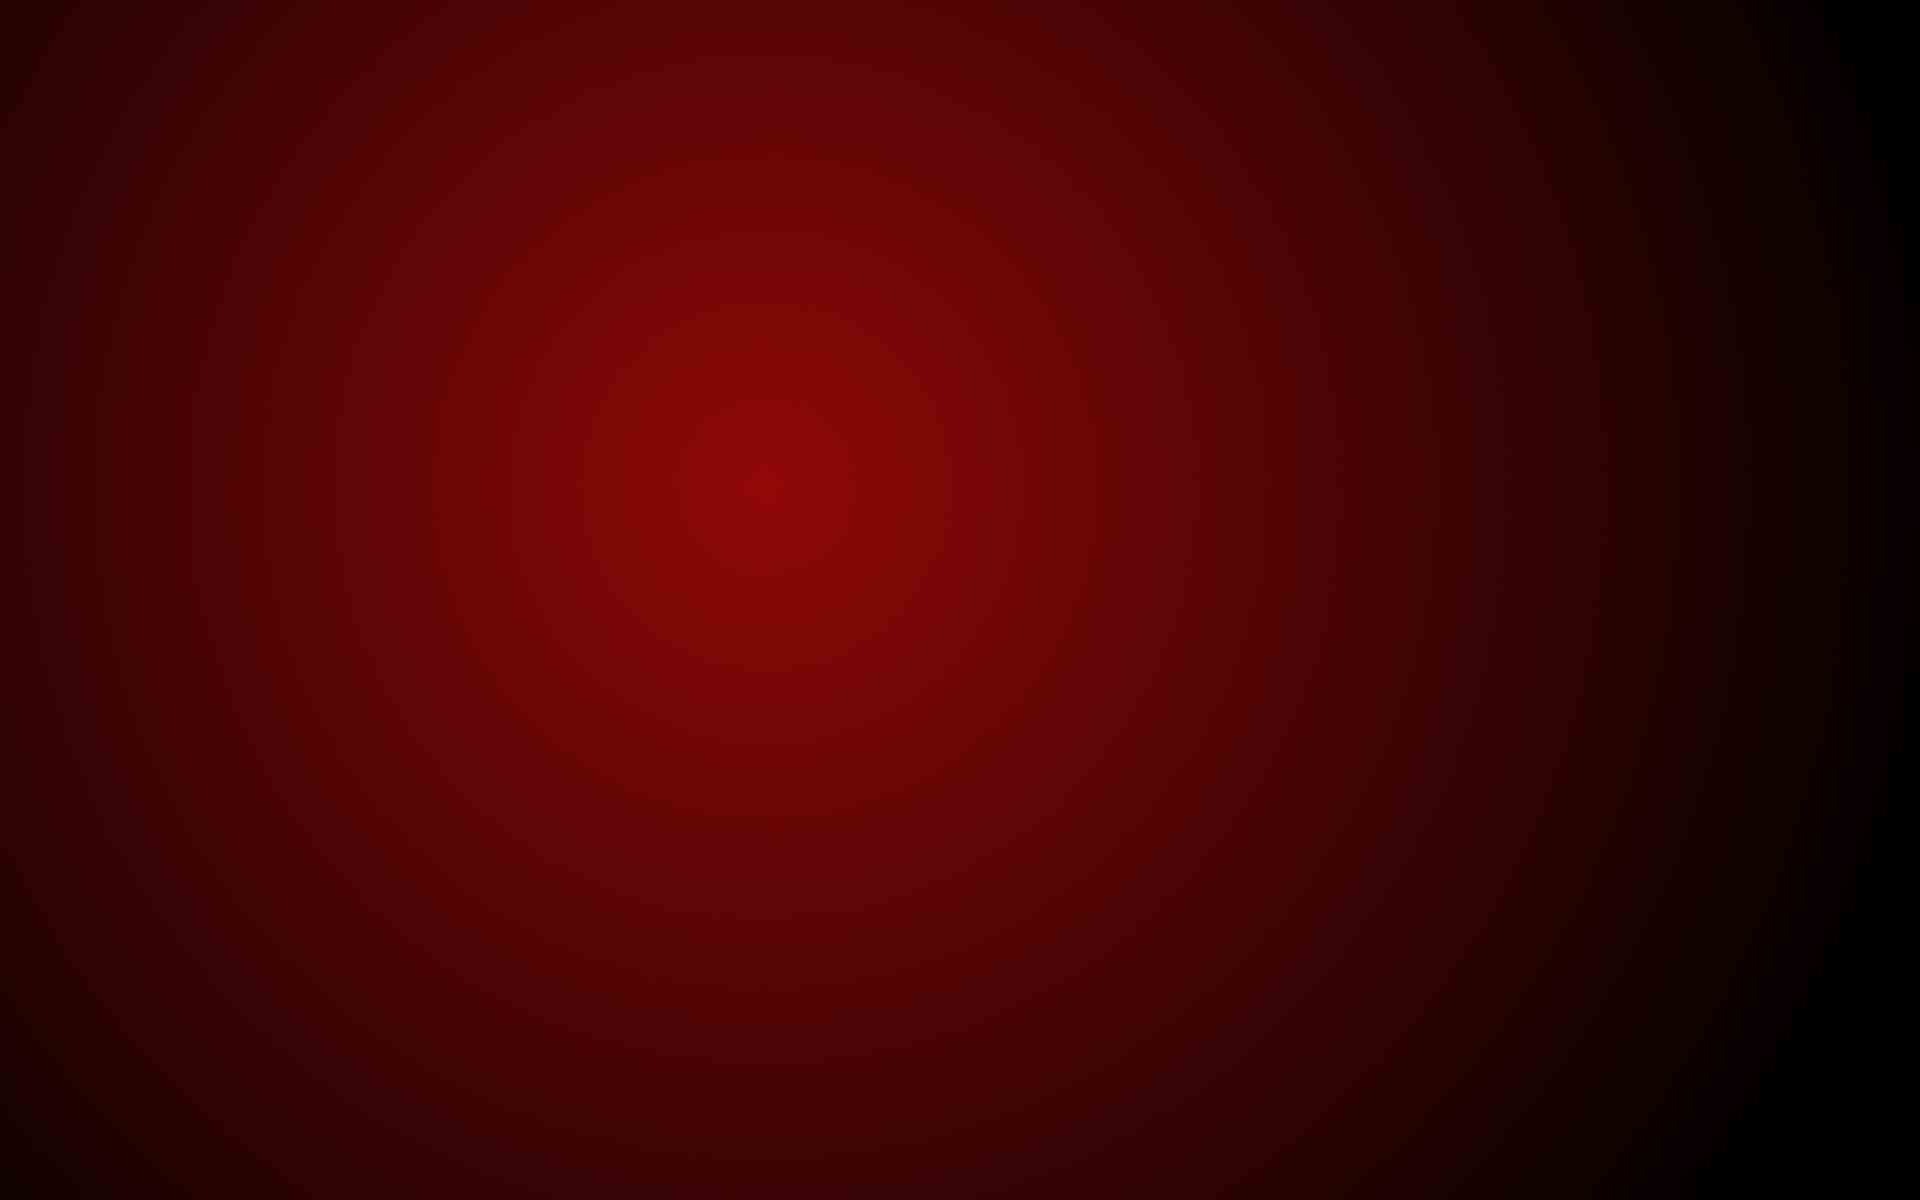 1920x1200 Plain Red Wallpapers 19 Download 2758x1822